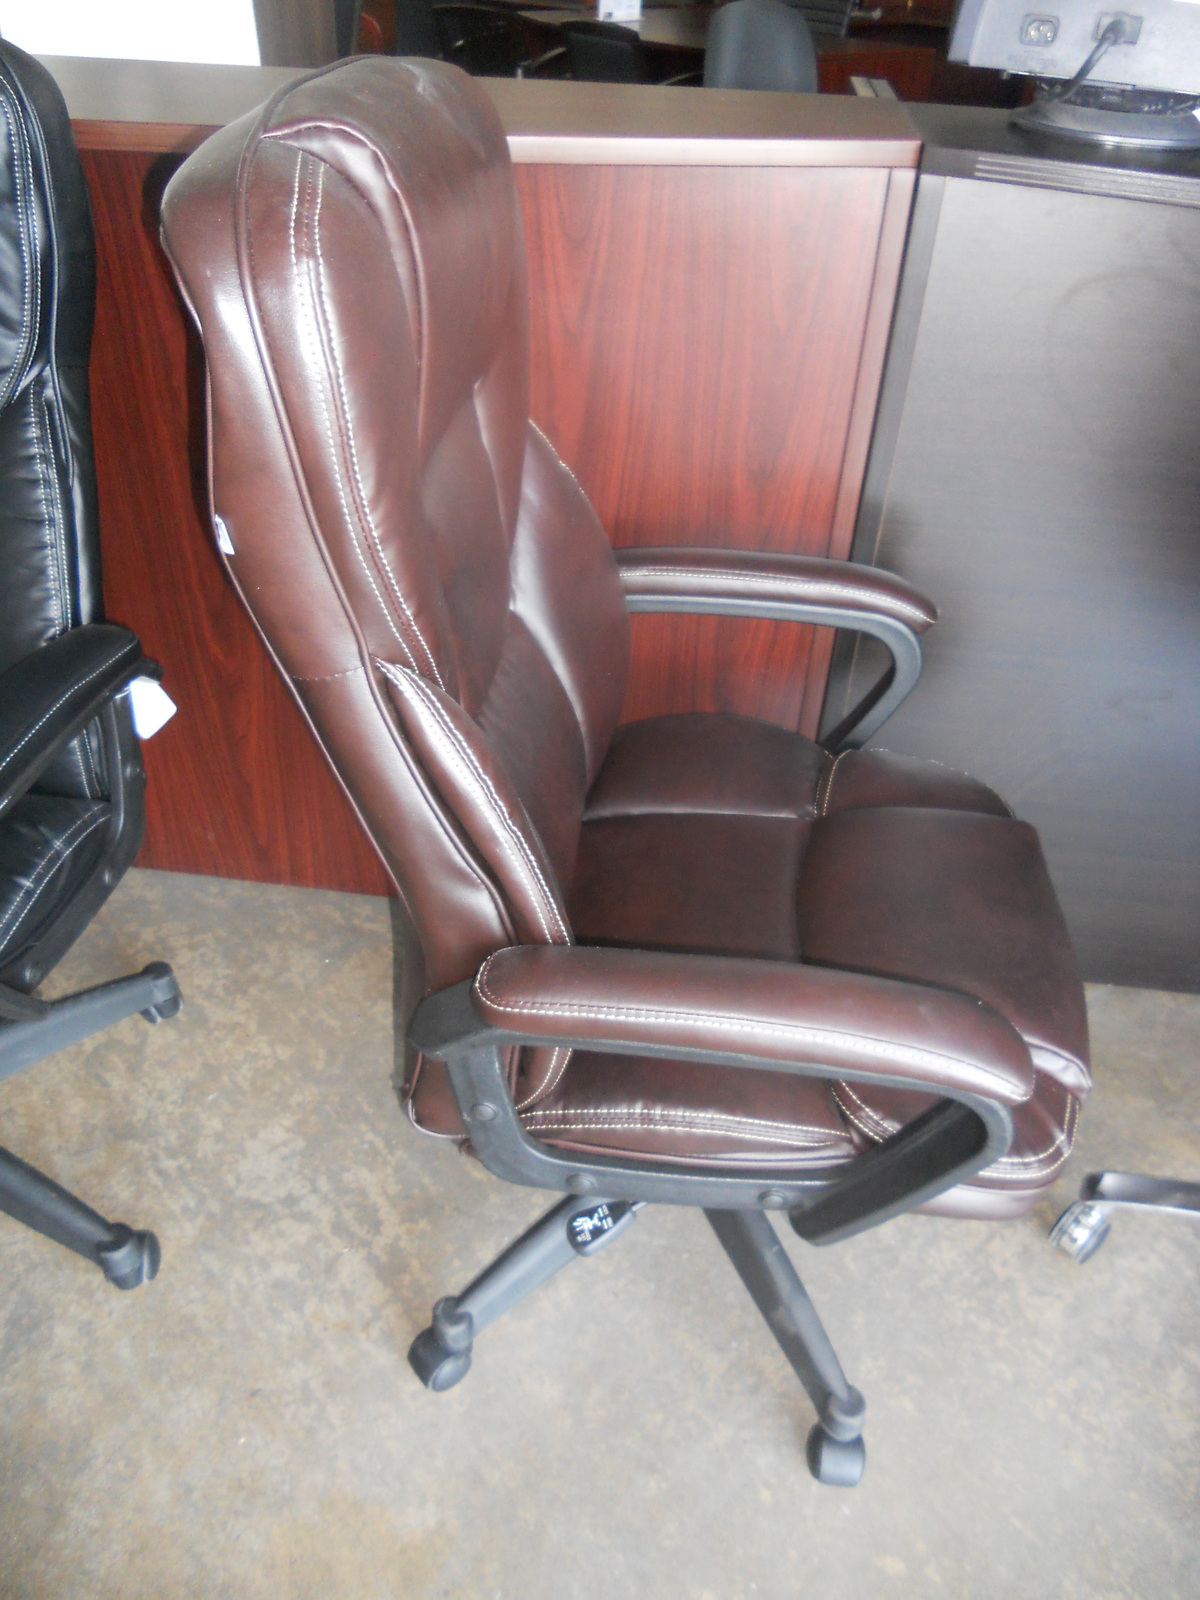 realspace fosner high back bonded leather chair making morris cushions cabernet